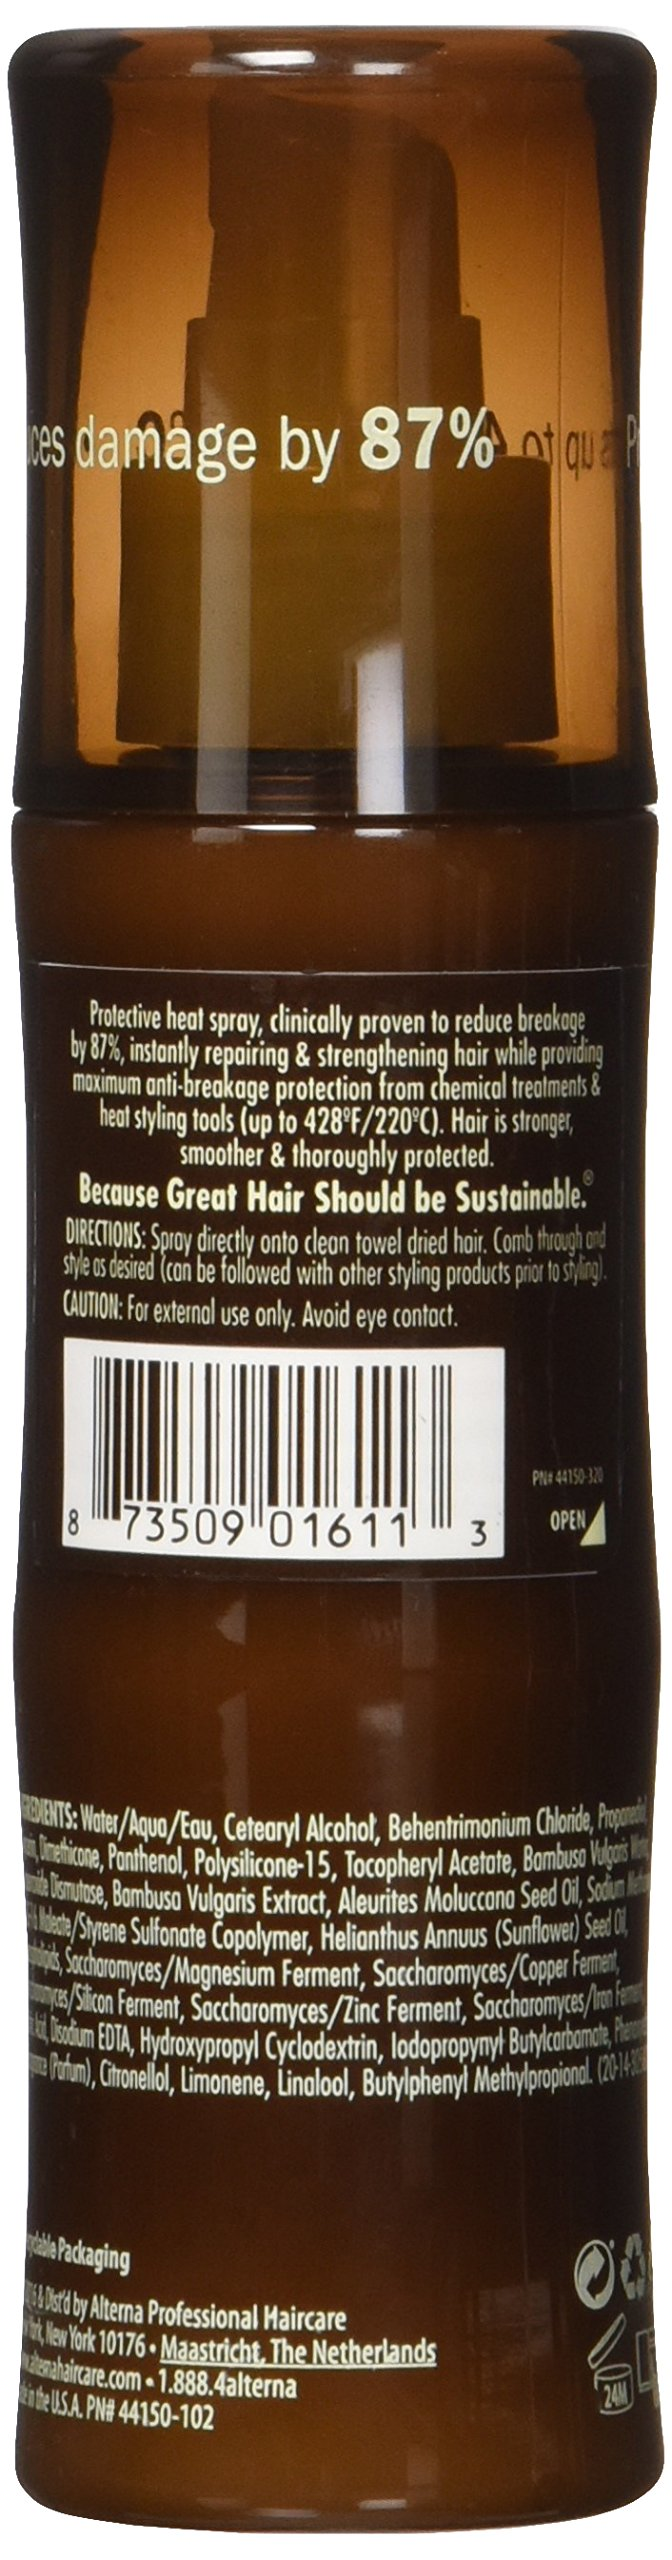 Bamboo Smooth Anti-Breakage Thermal Protectant, 4.2-Ounce by Alterna (Image #1)